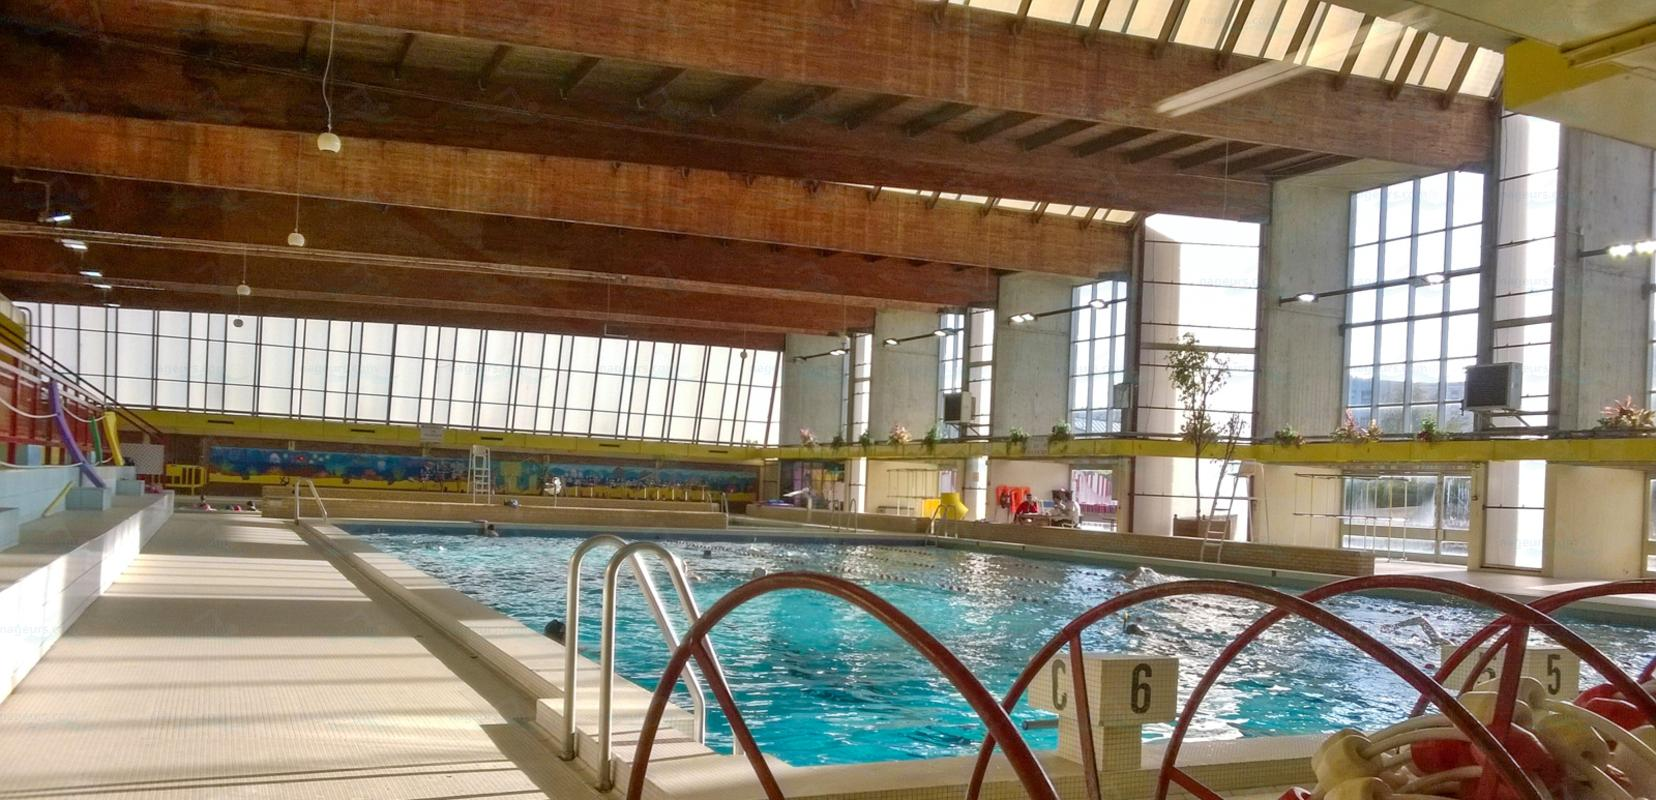 Photos piscine georges tauziet for Horaires piscine meaux